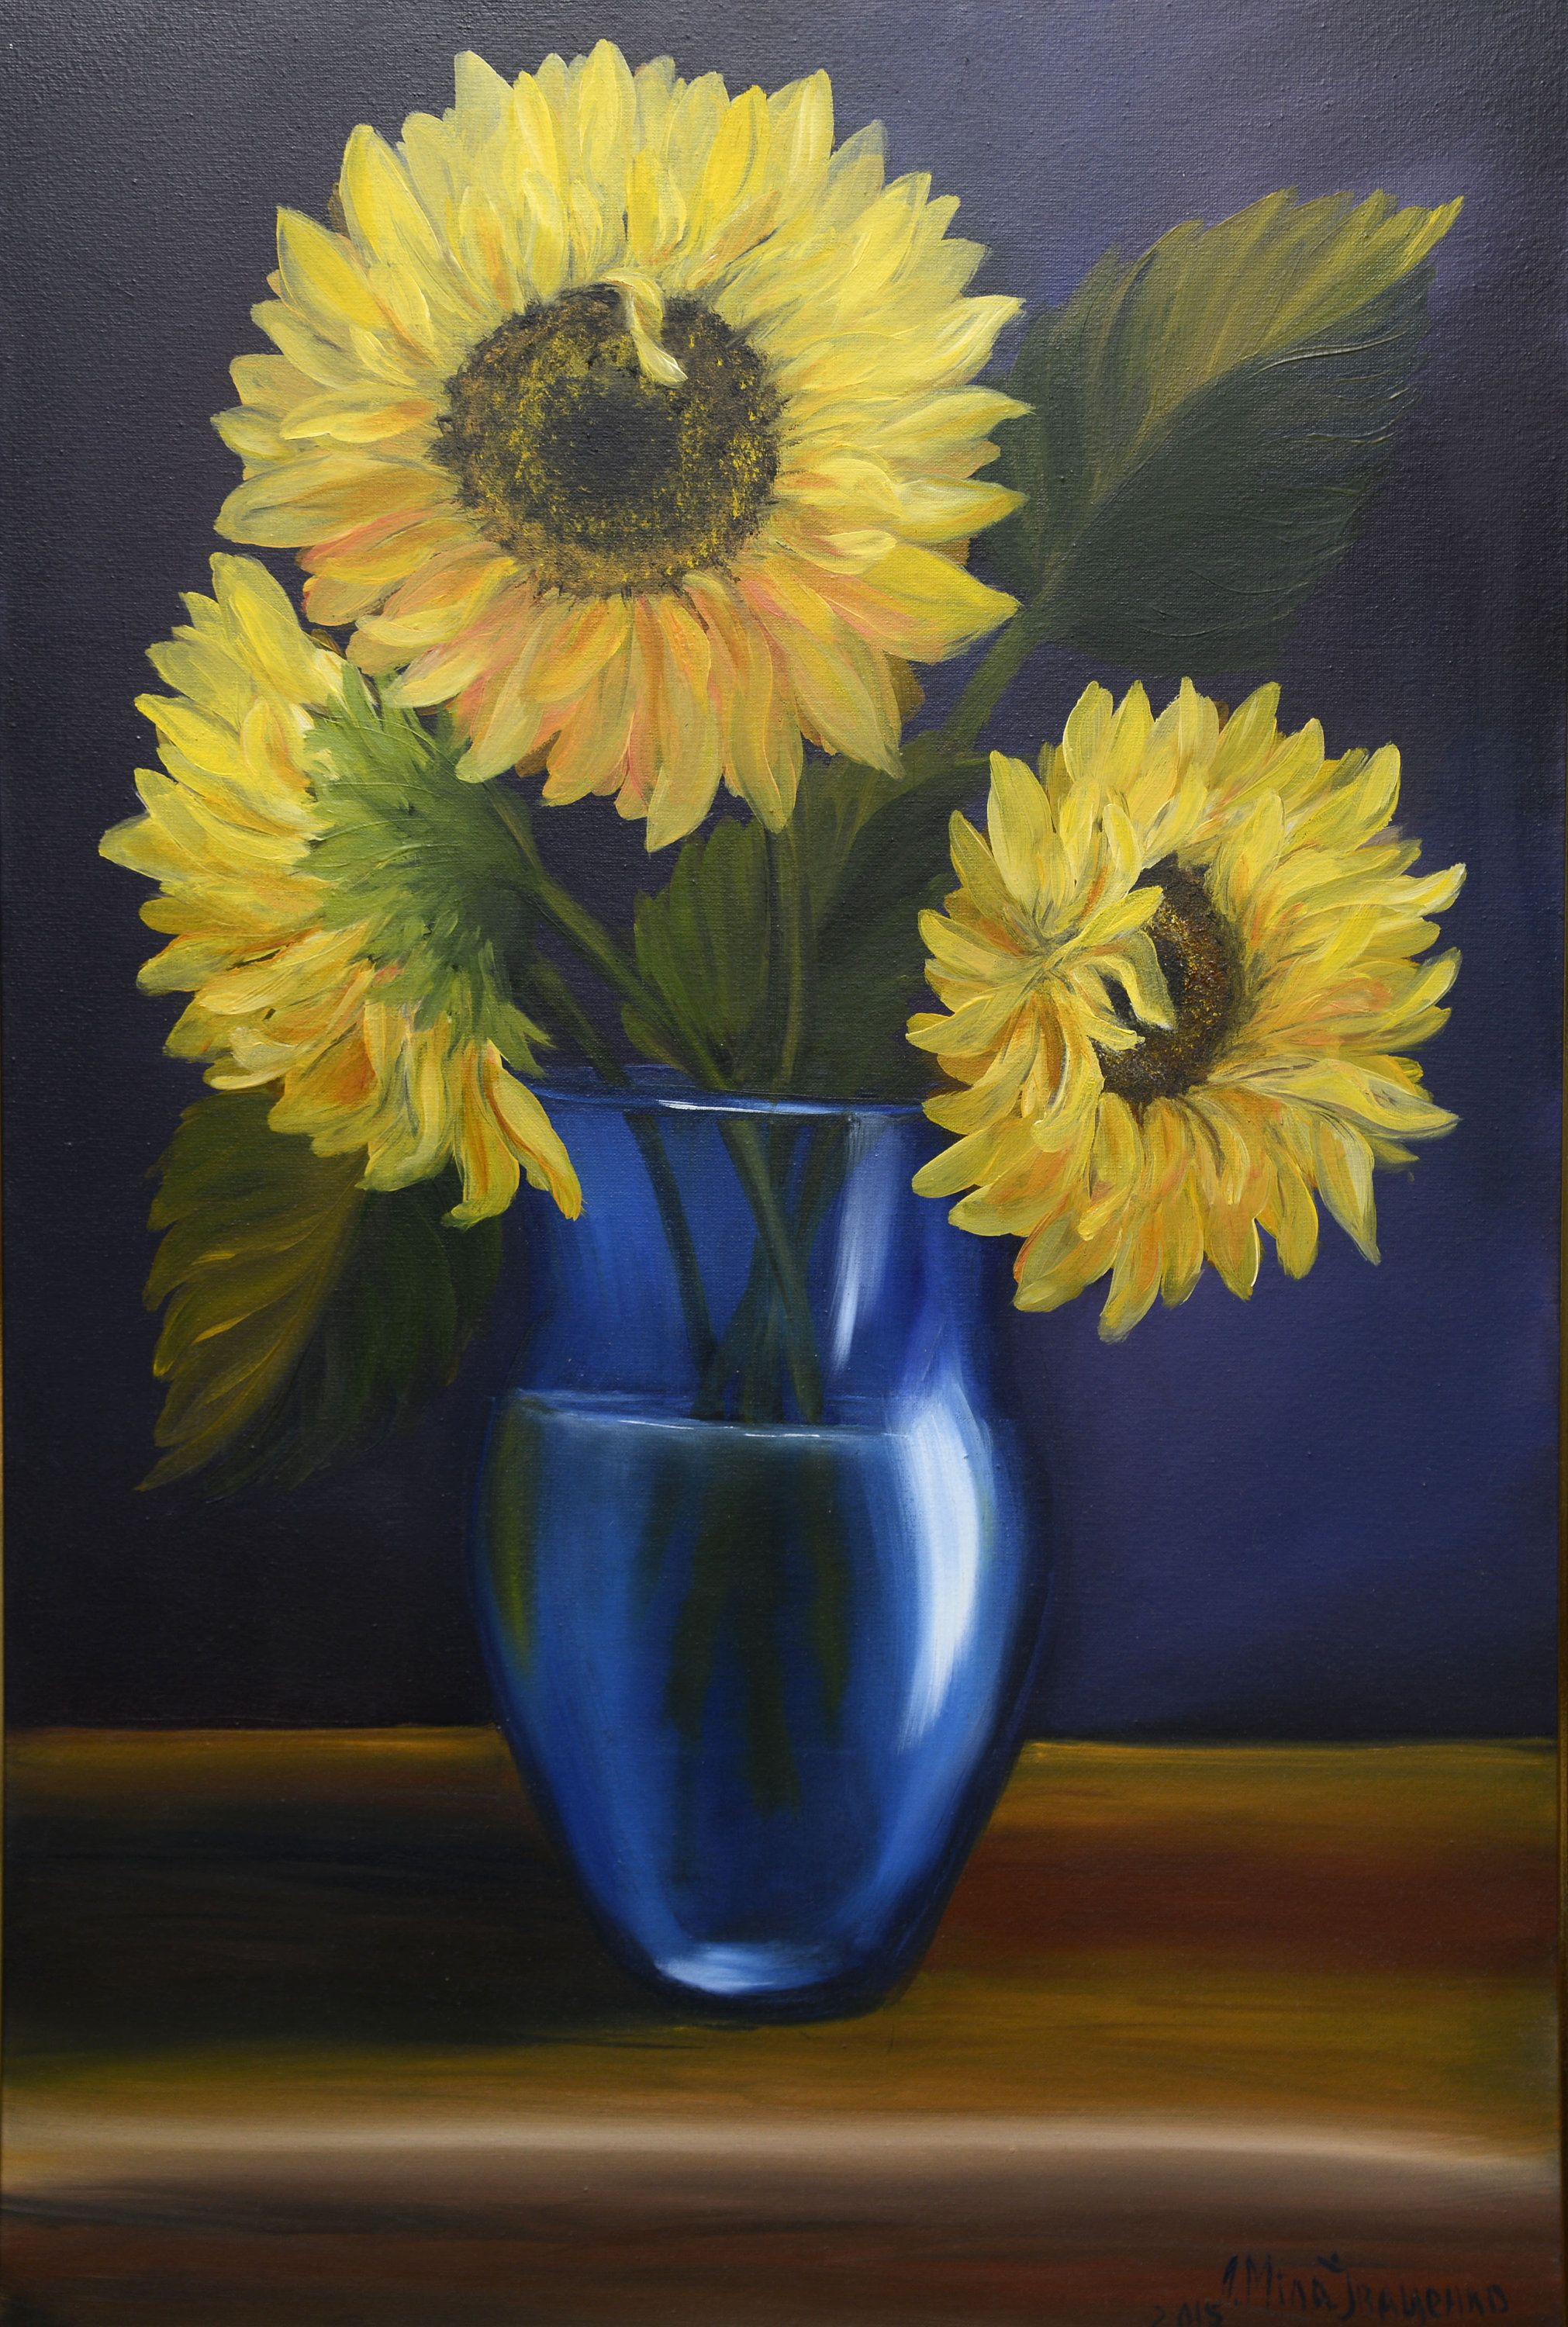 Three Sunflowers In A Blue Vase Original Oil Painting Yellow Flowers On A Dark Background Hand Painted Sunflowers Original Oil Painting Blue Vase Sunflower Art